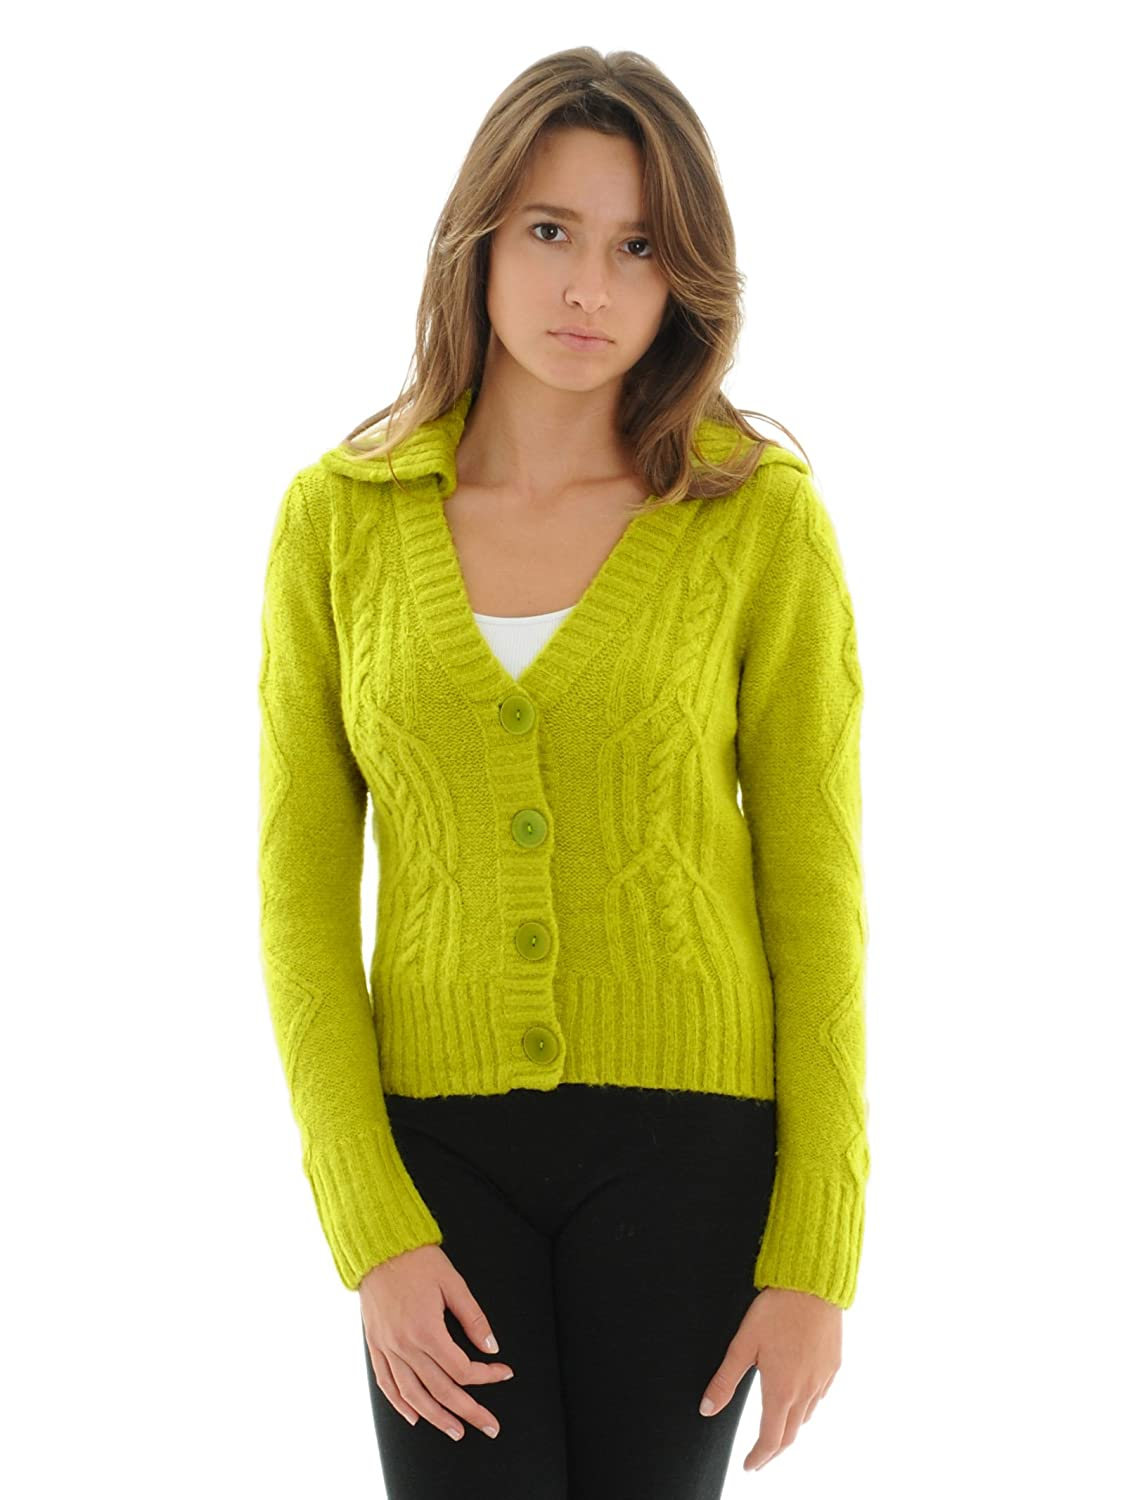 Vice Versa Women's Chartreuse Cable Knit Collar Wool Blend ...